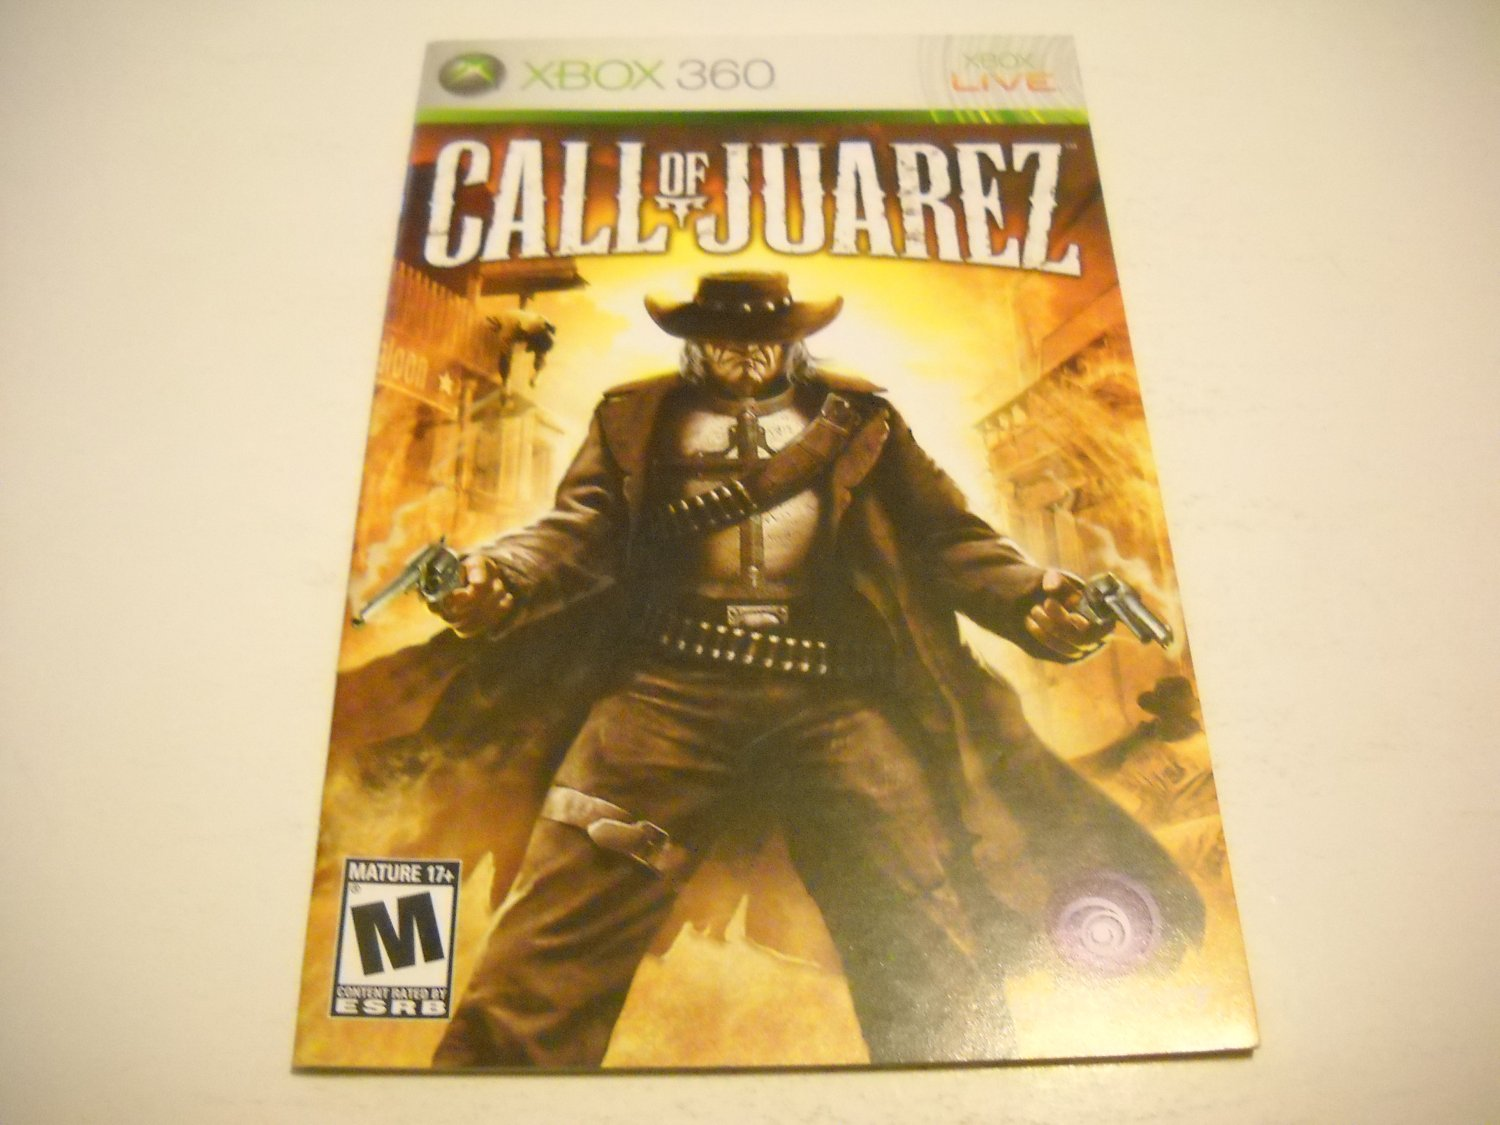 Manual ONLY ~  for Call of Juarez   - Xbox 360 Instruction Booklet